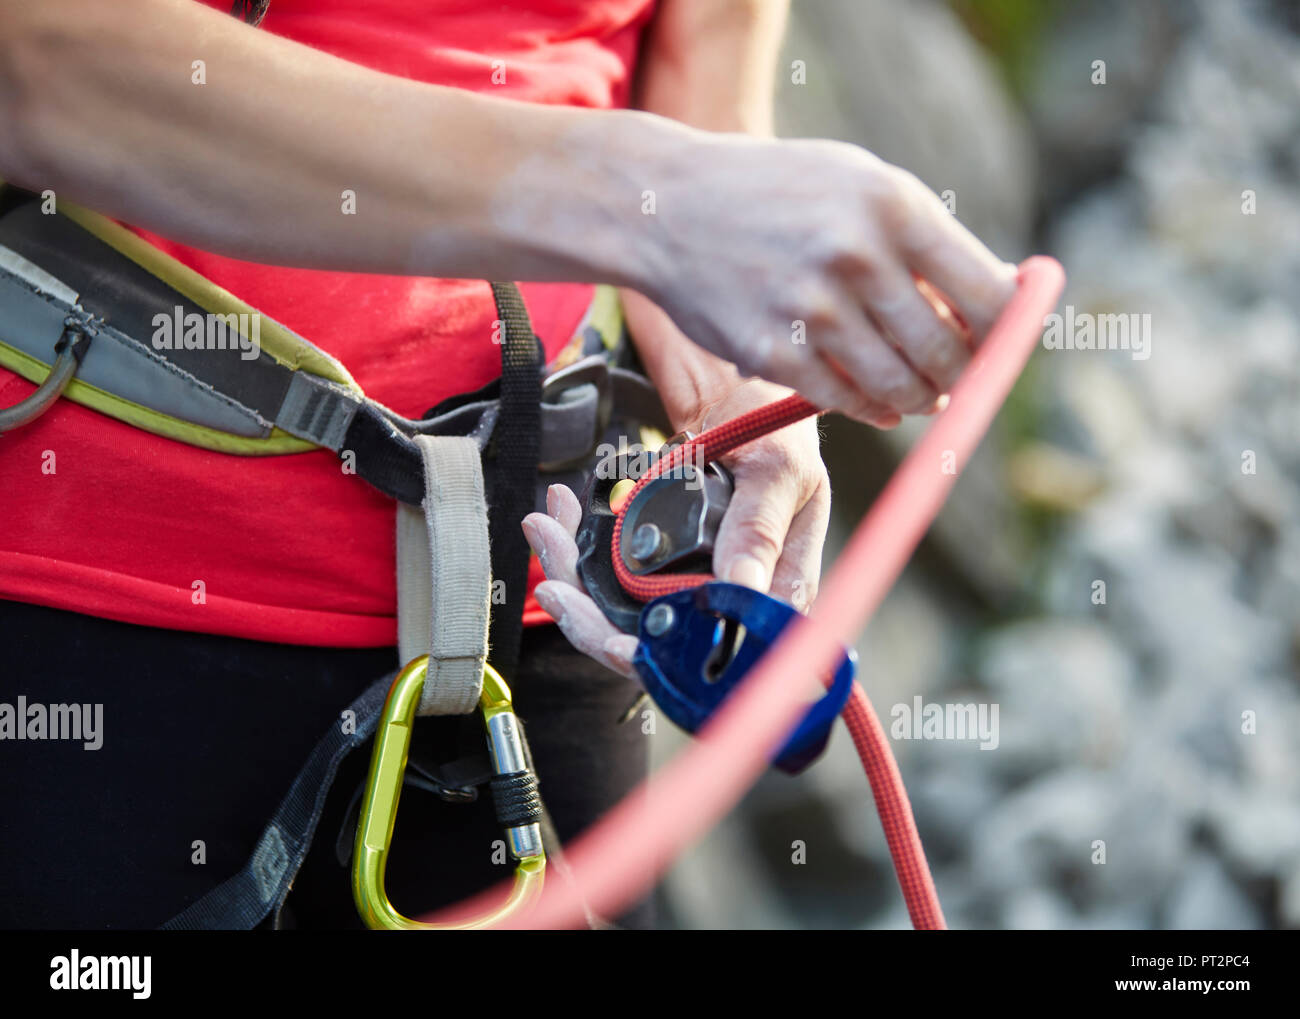 Close-up of female climber with climbing equipment - Stock Image